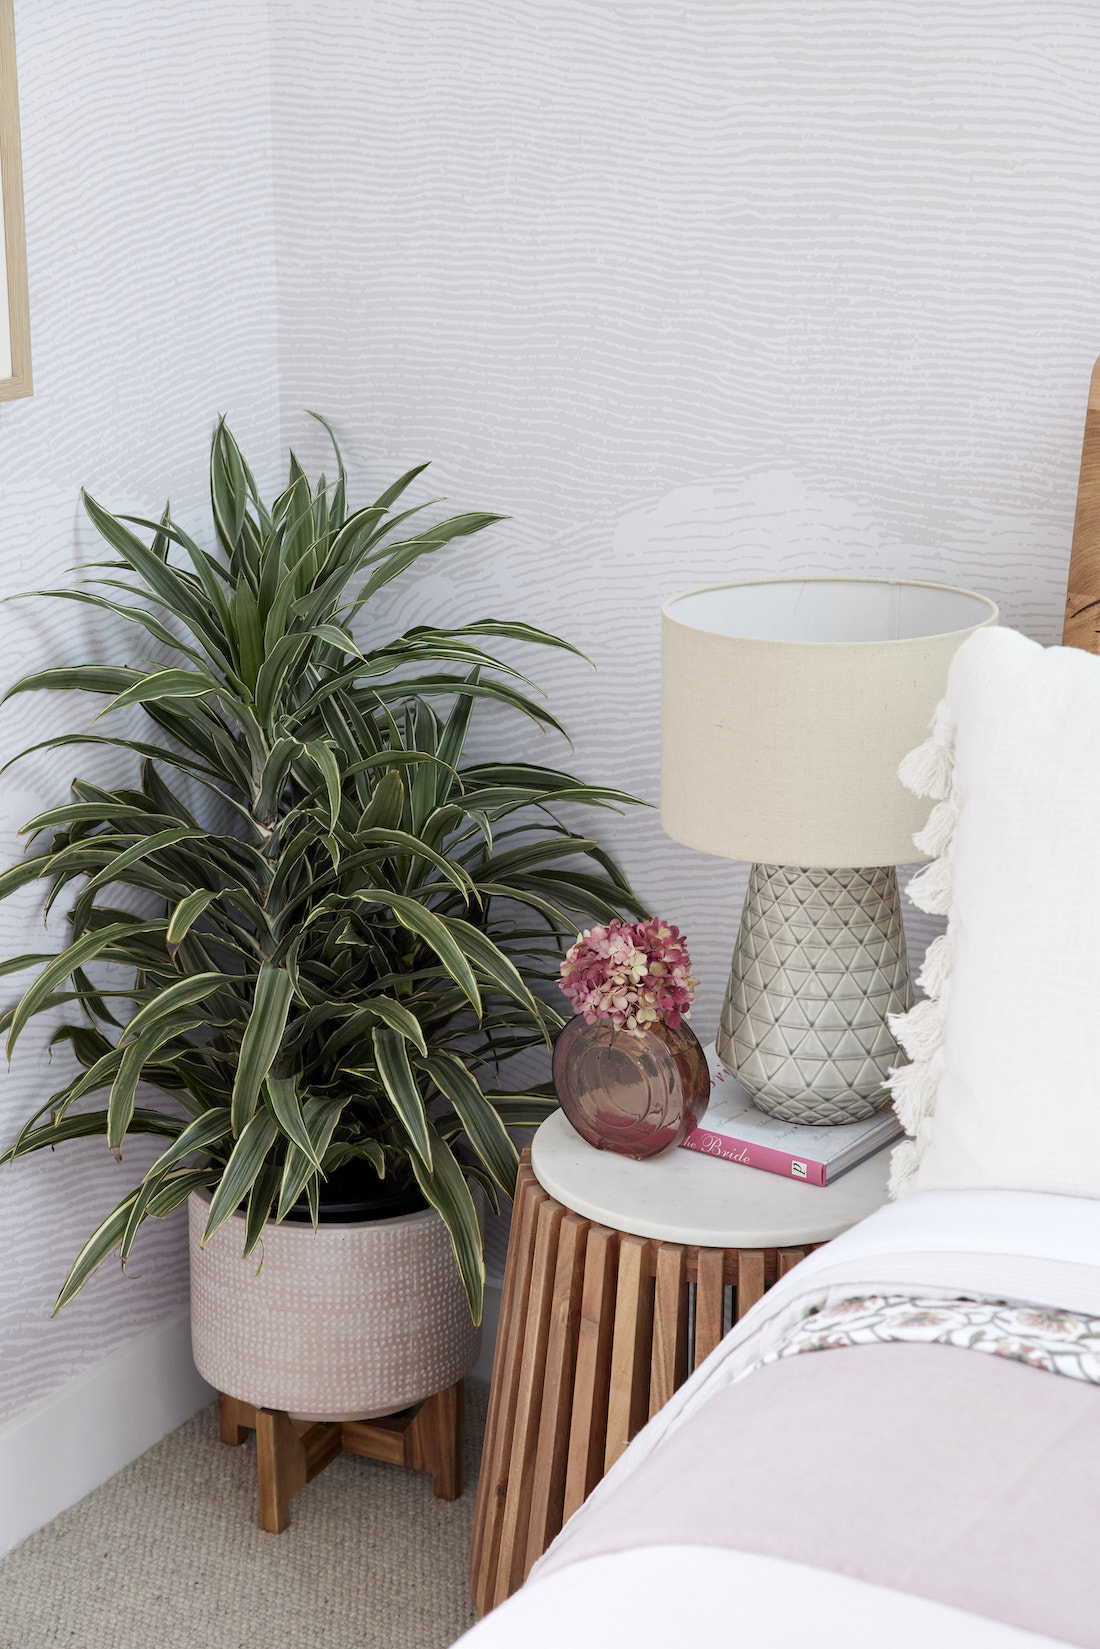 Bedside table and indoor plant